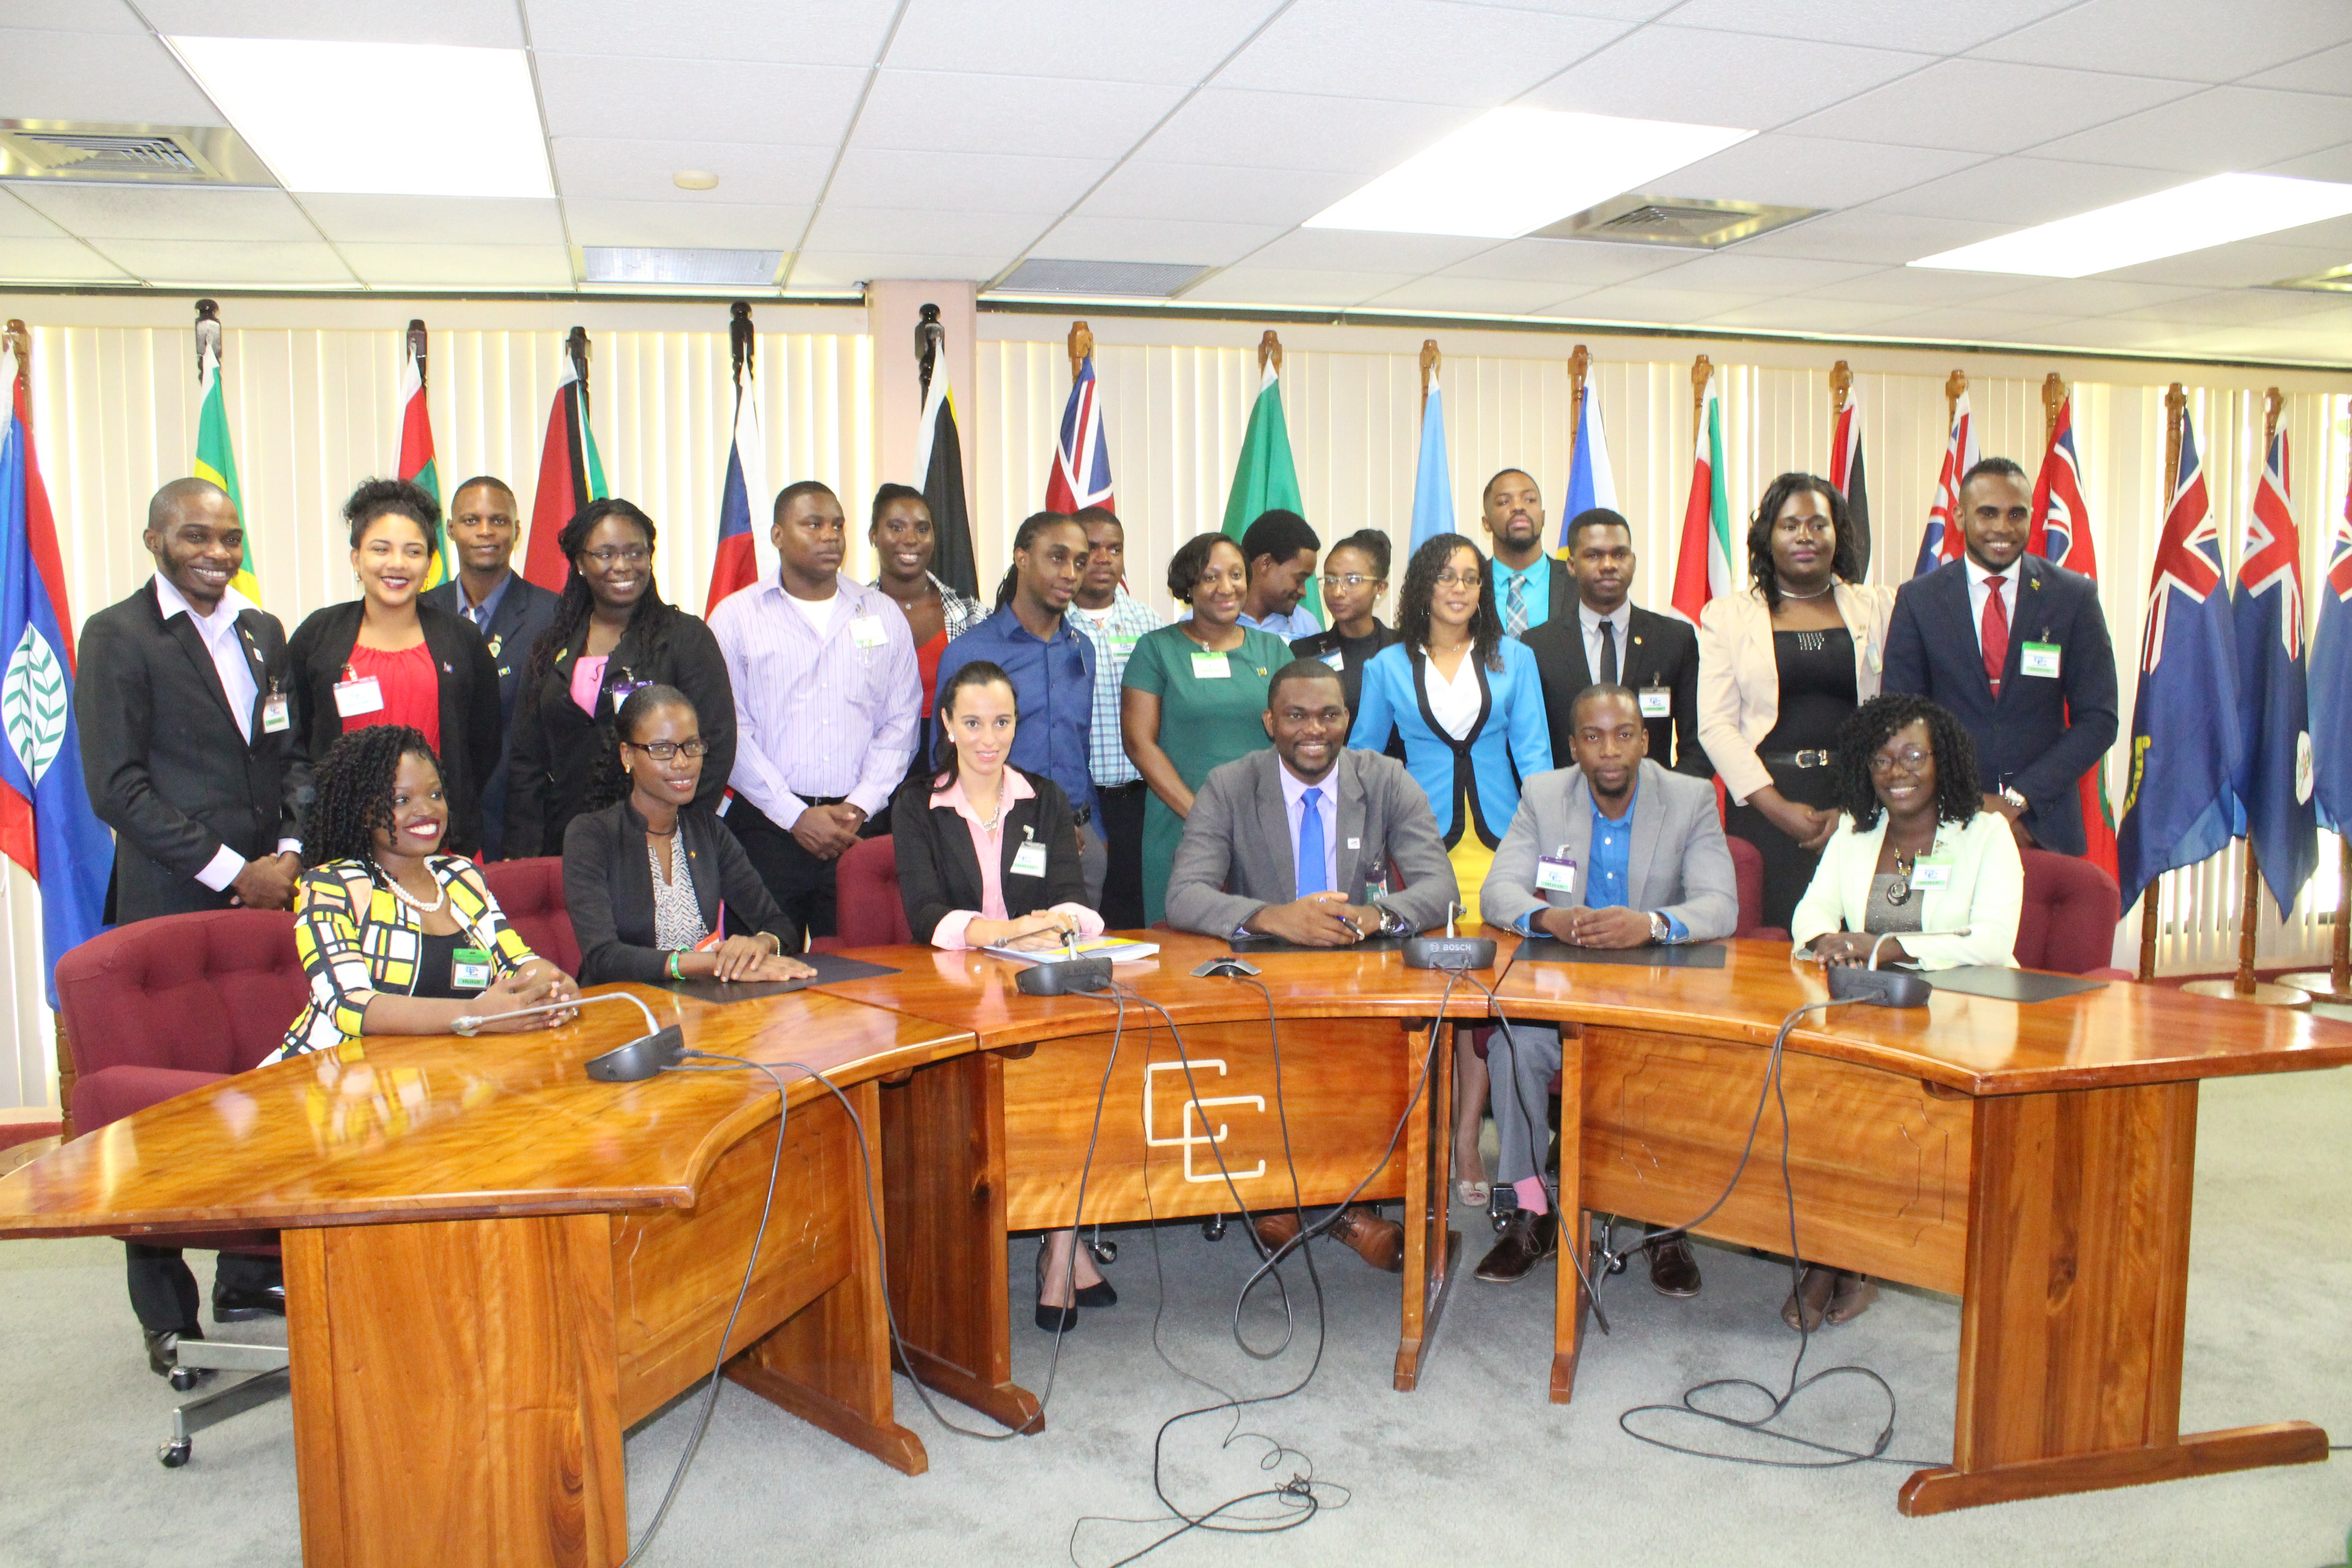 CARICOM Youth Ambassadors pose for a photo at the end of the opening ceremony for a CYAP Orientation and Capacity Building Workshop being held at the CARICOM Secretariat June 5-8, 2017